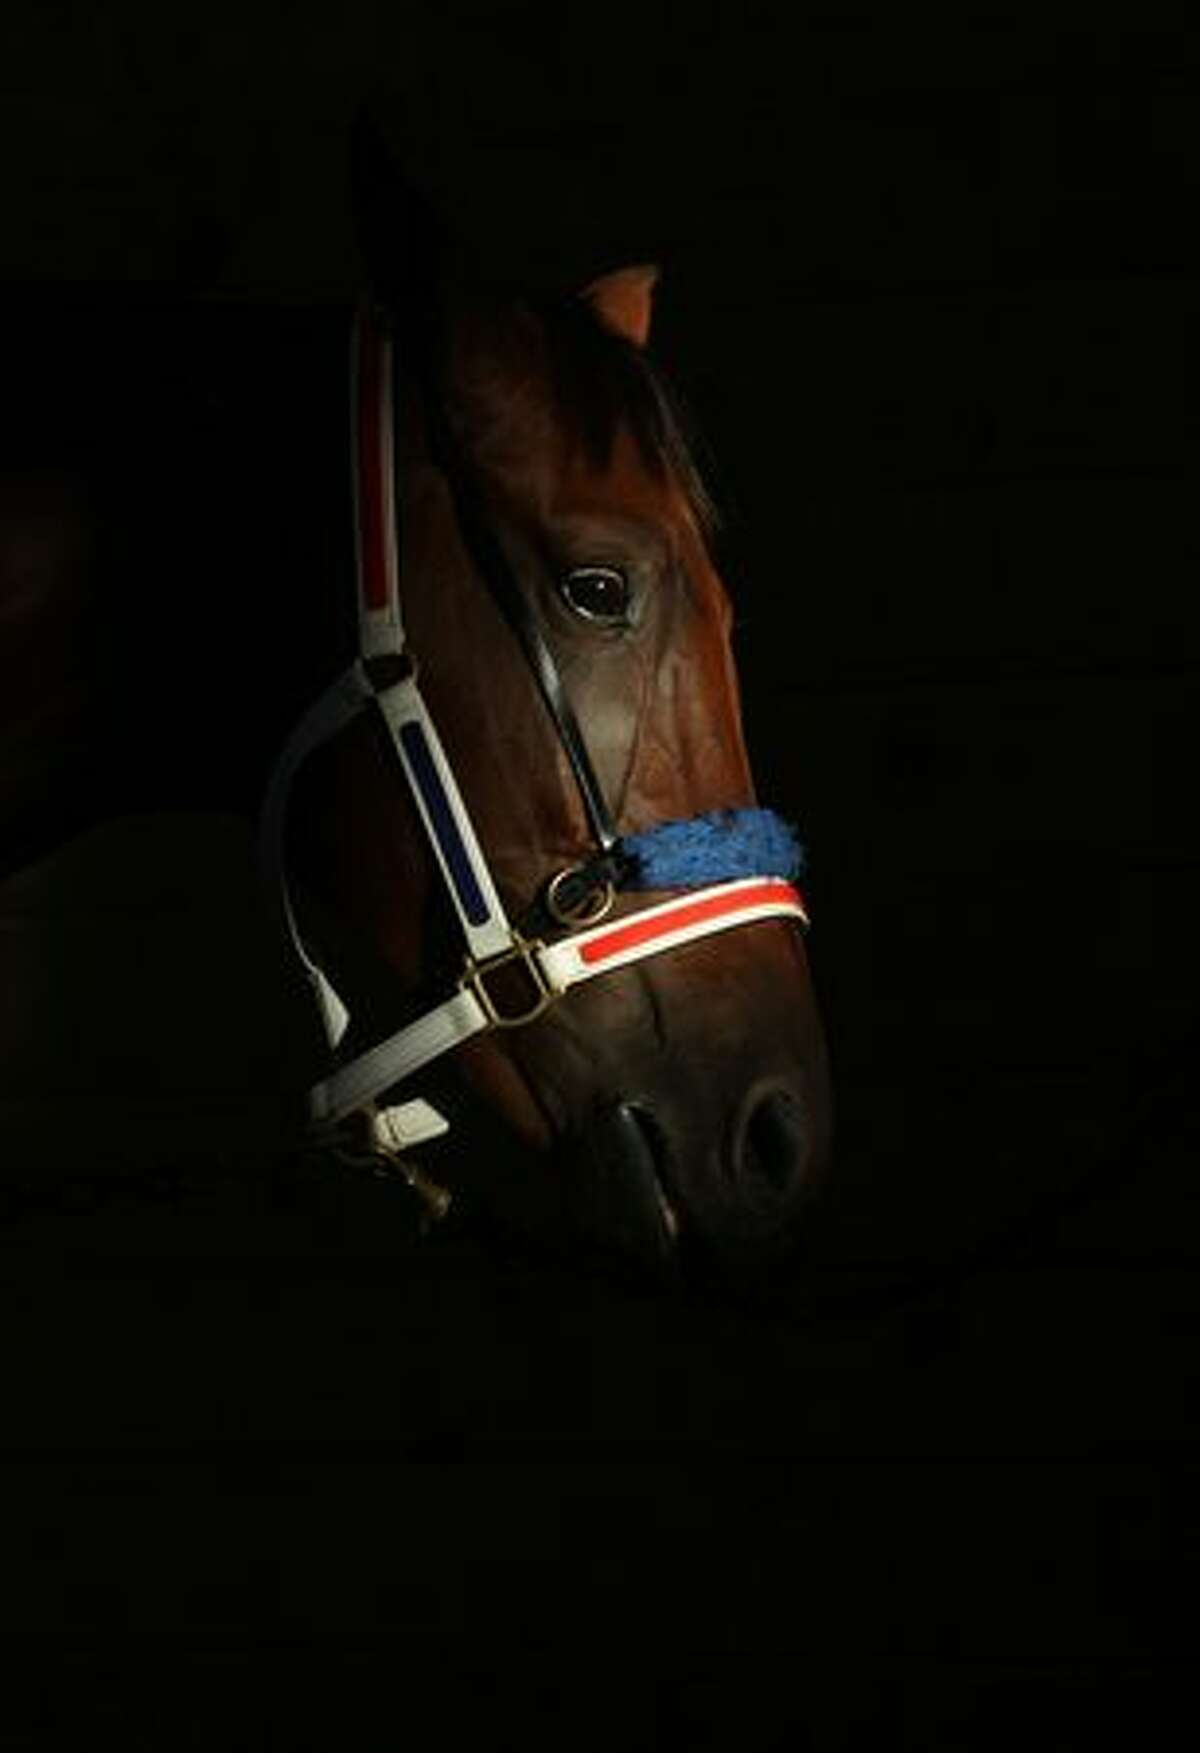 A horse waits in the stables during Auckland Trotting Cup day at Alexandra Park on March 11, 2011 in Auckland, New Zealand.